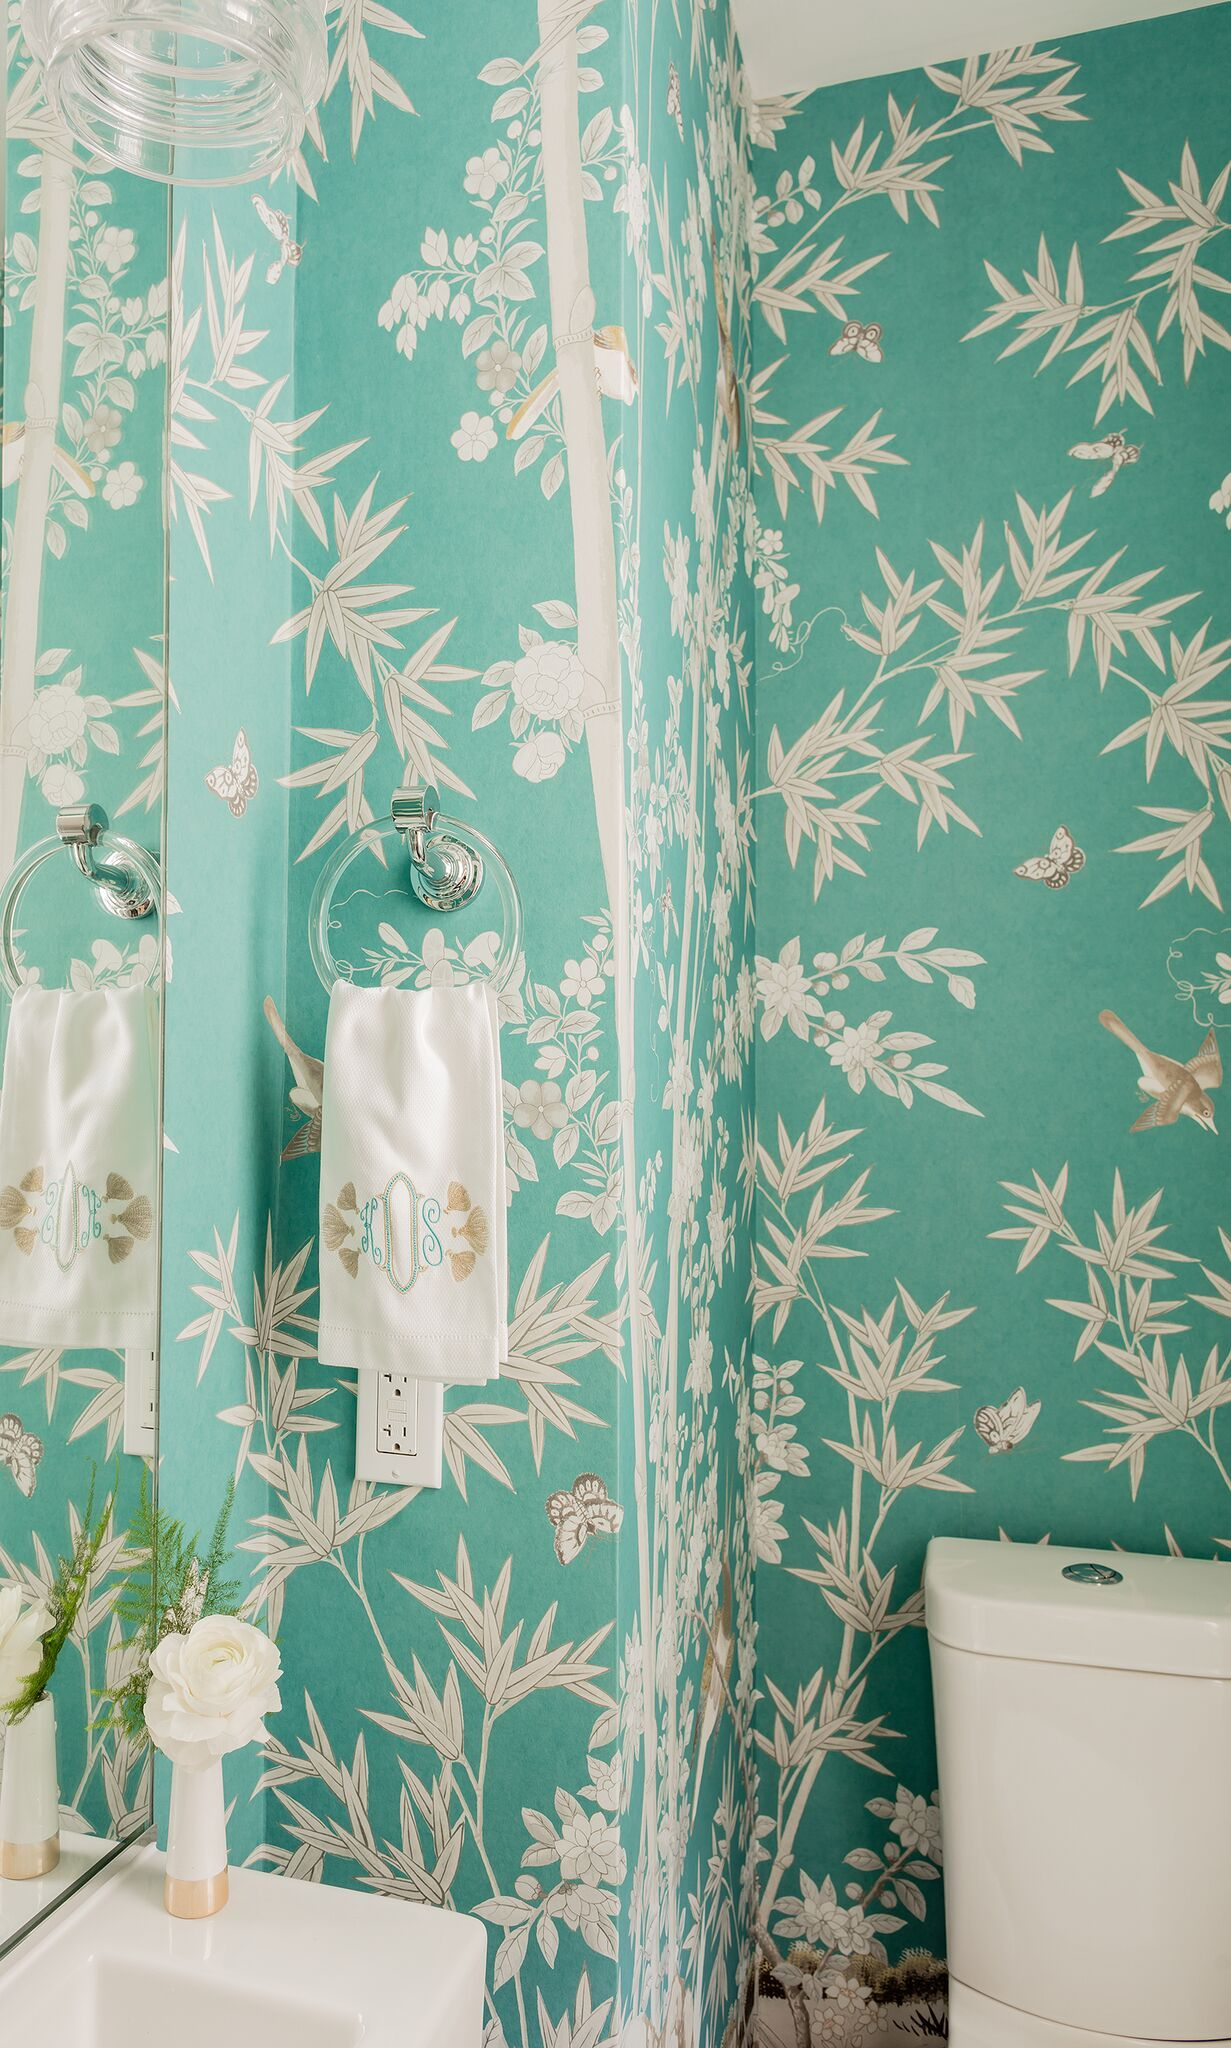 10 Interior Design Secrets Only The Pros Know Powder Room Wallpaper Interior Design Secrets Bathroom Wallpaper